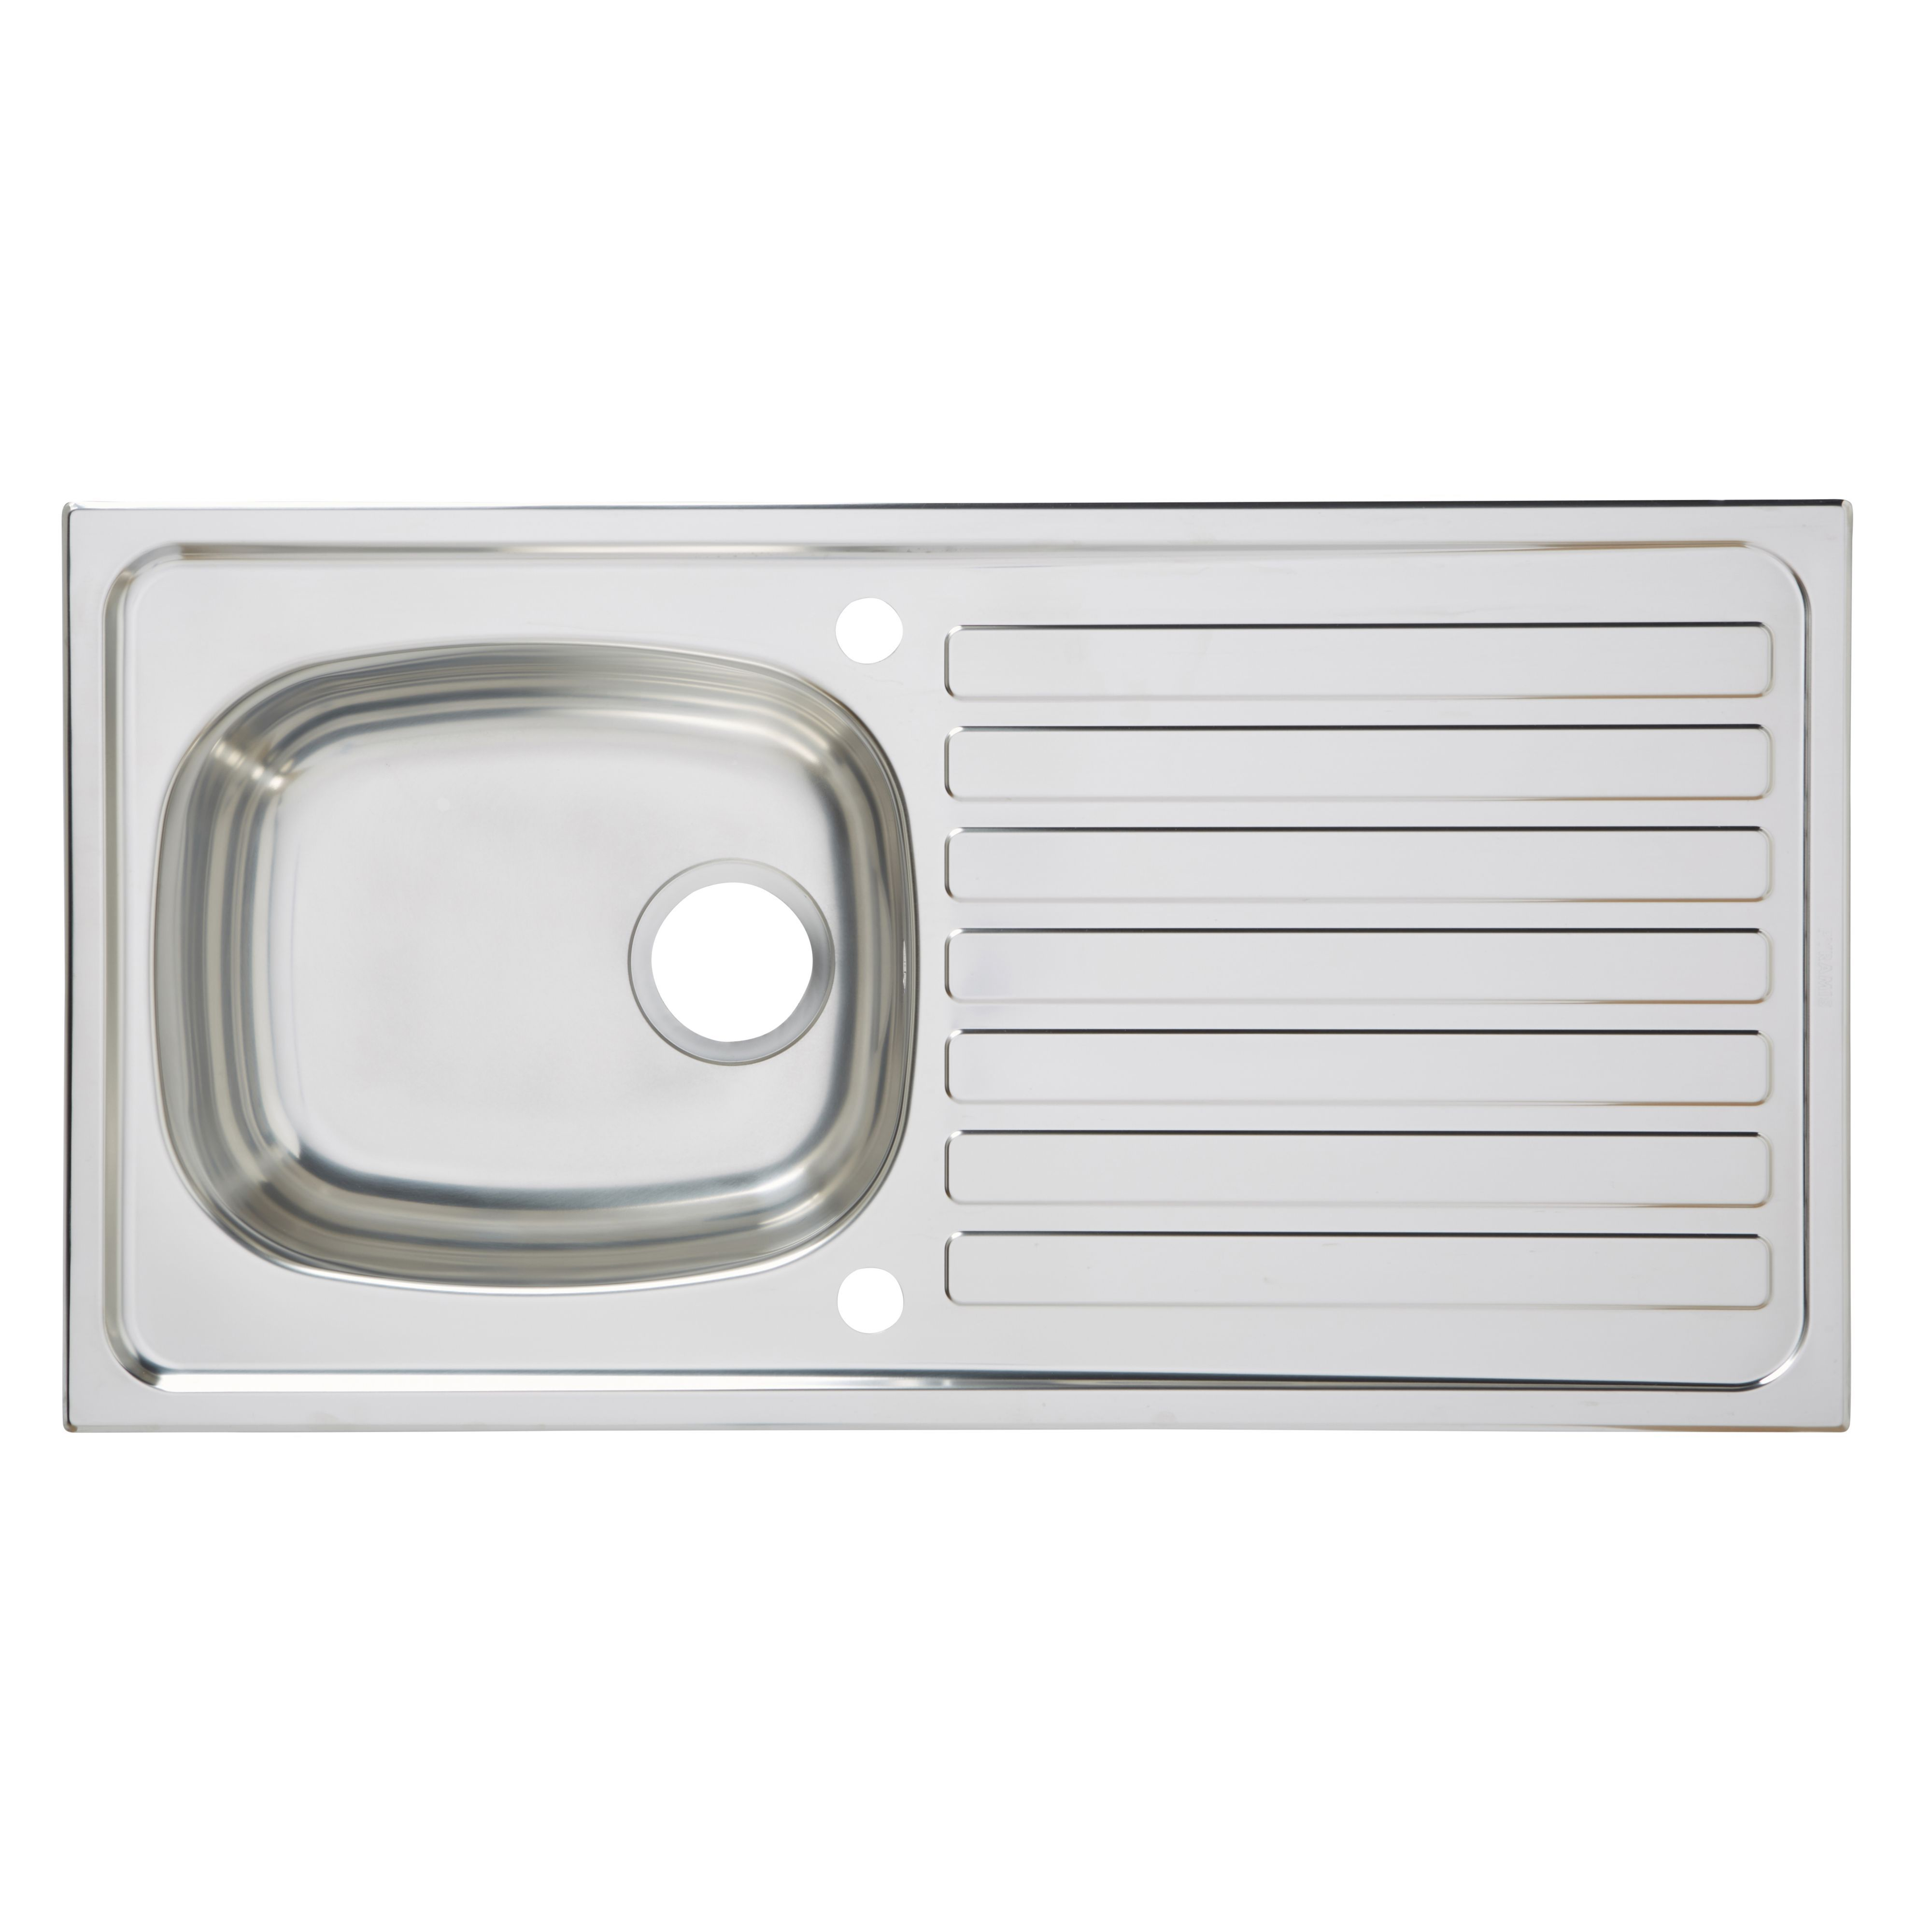 Utility 1 Bowl Polished Stainless Steel Sink & Drainer